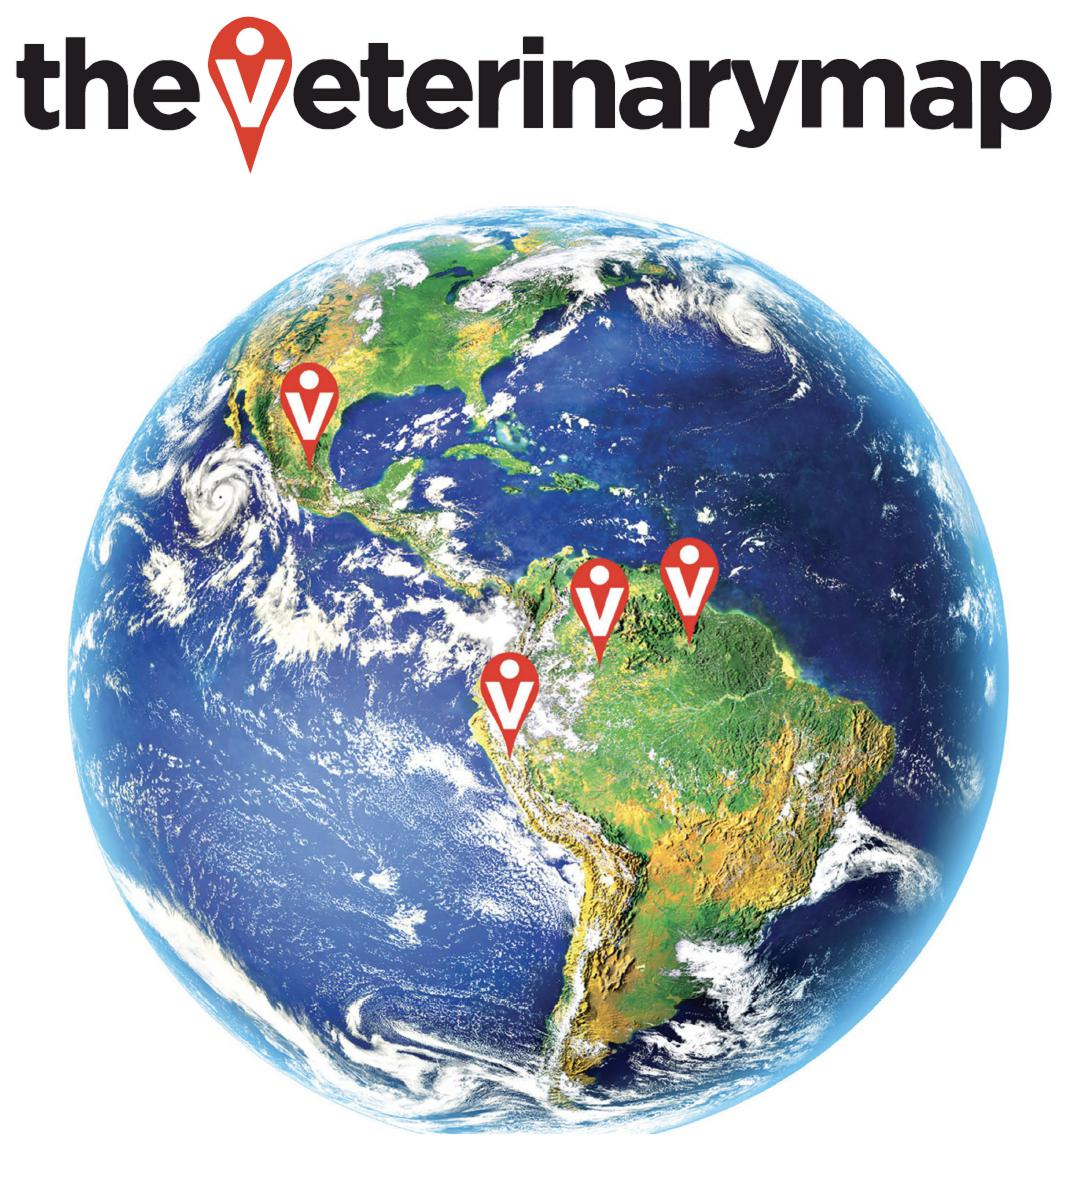 The Veterinary Map